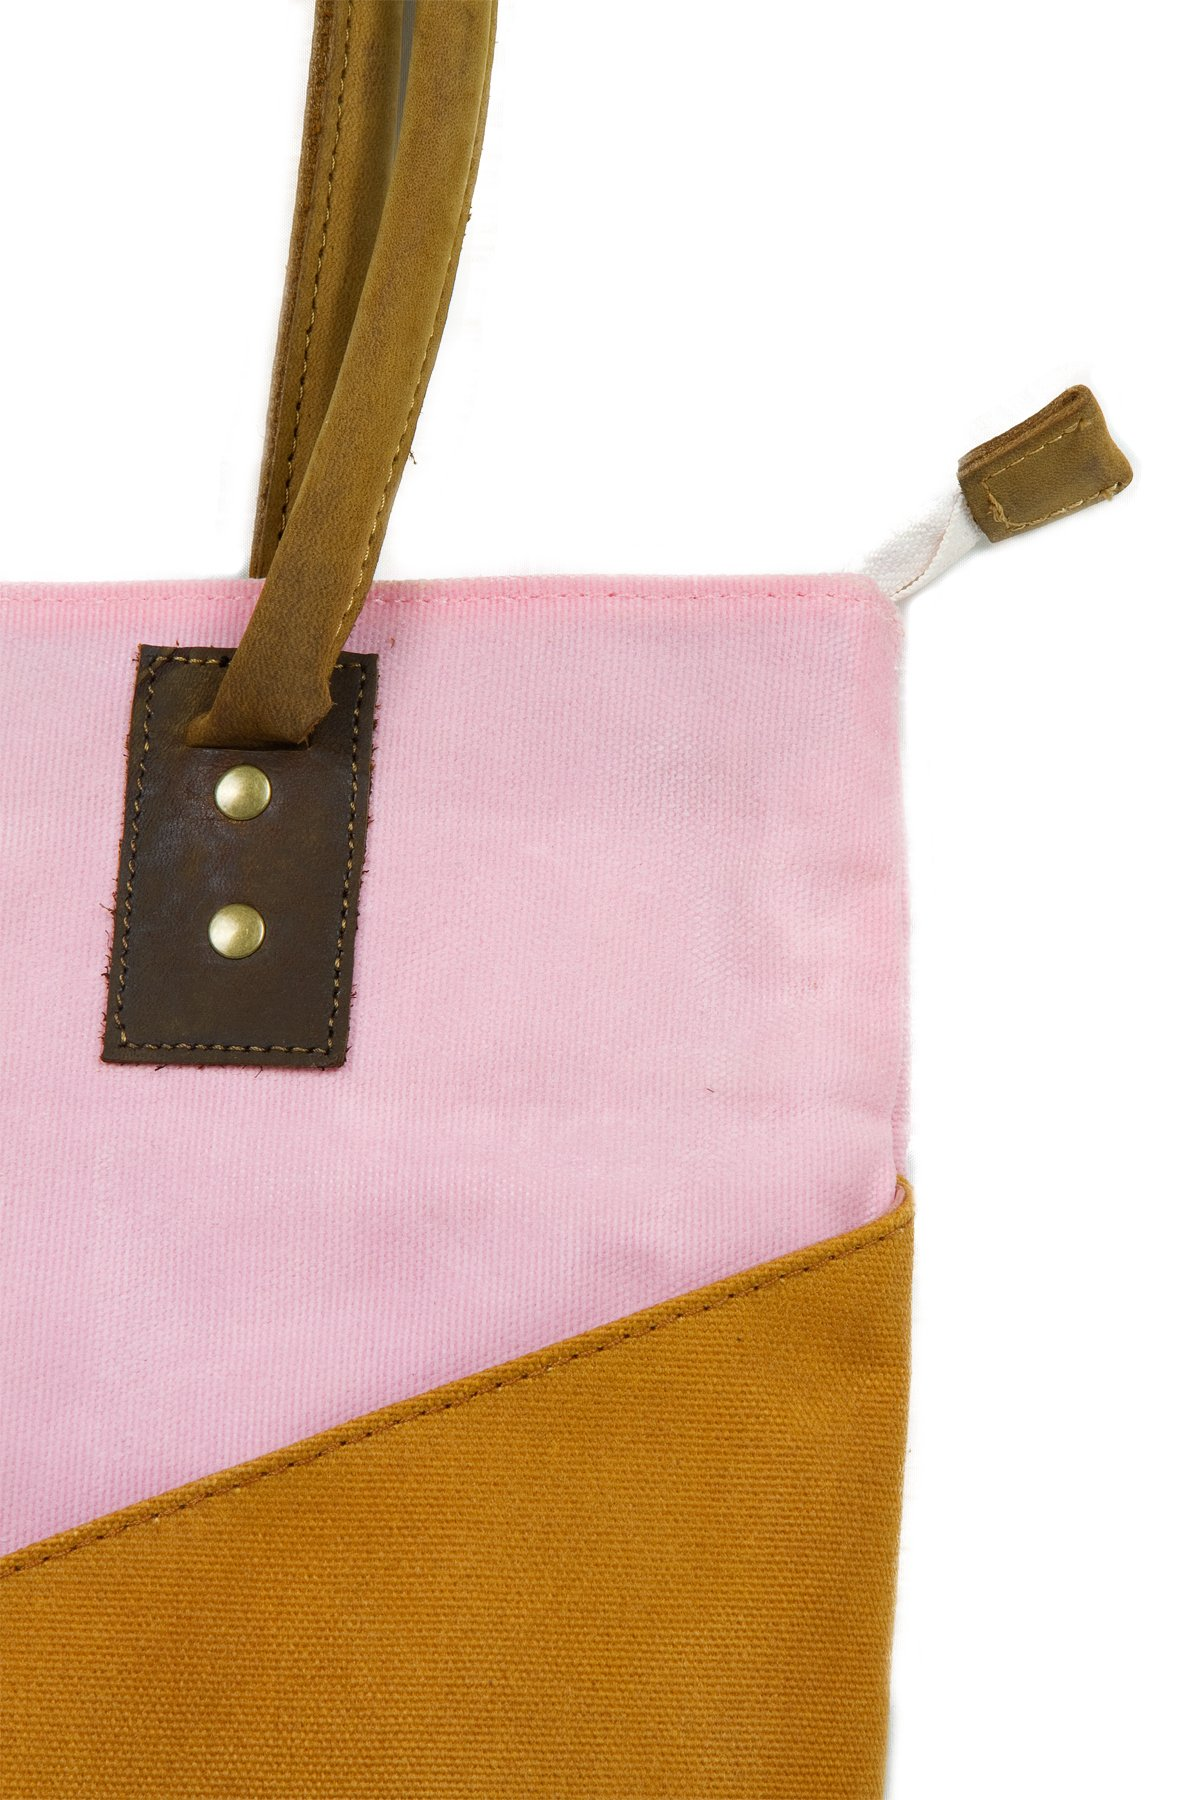 Large Waxed Canvas Tote Bag for Women | the JOPLIN TALL TOTE by FAT FELT (Desert) by FAT FELT (Image #3)